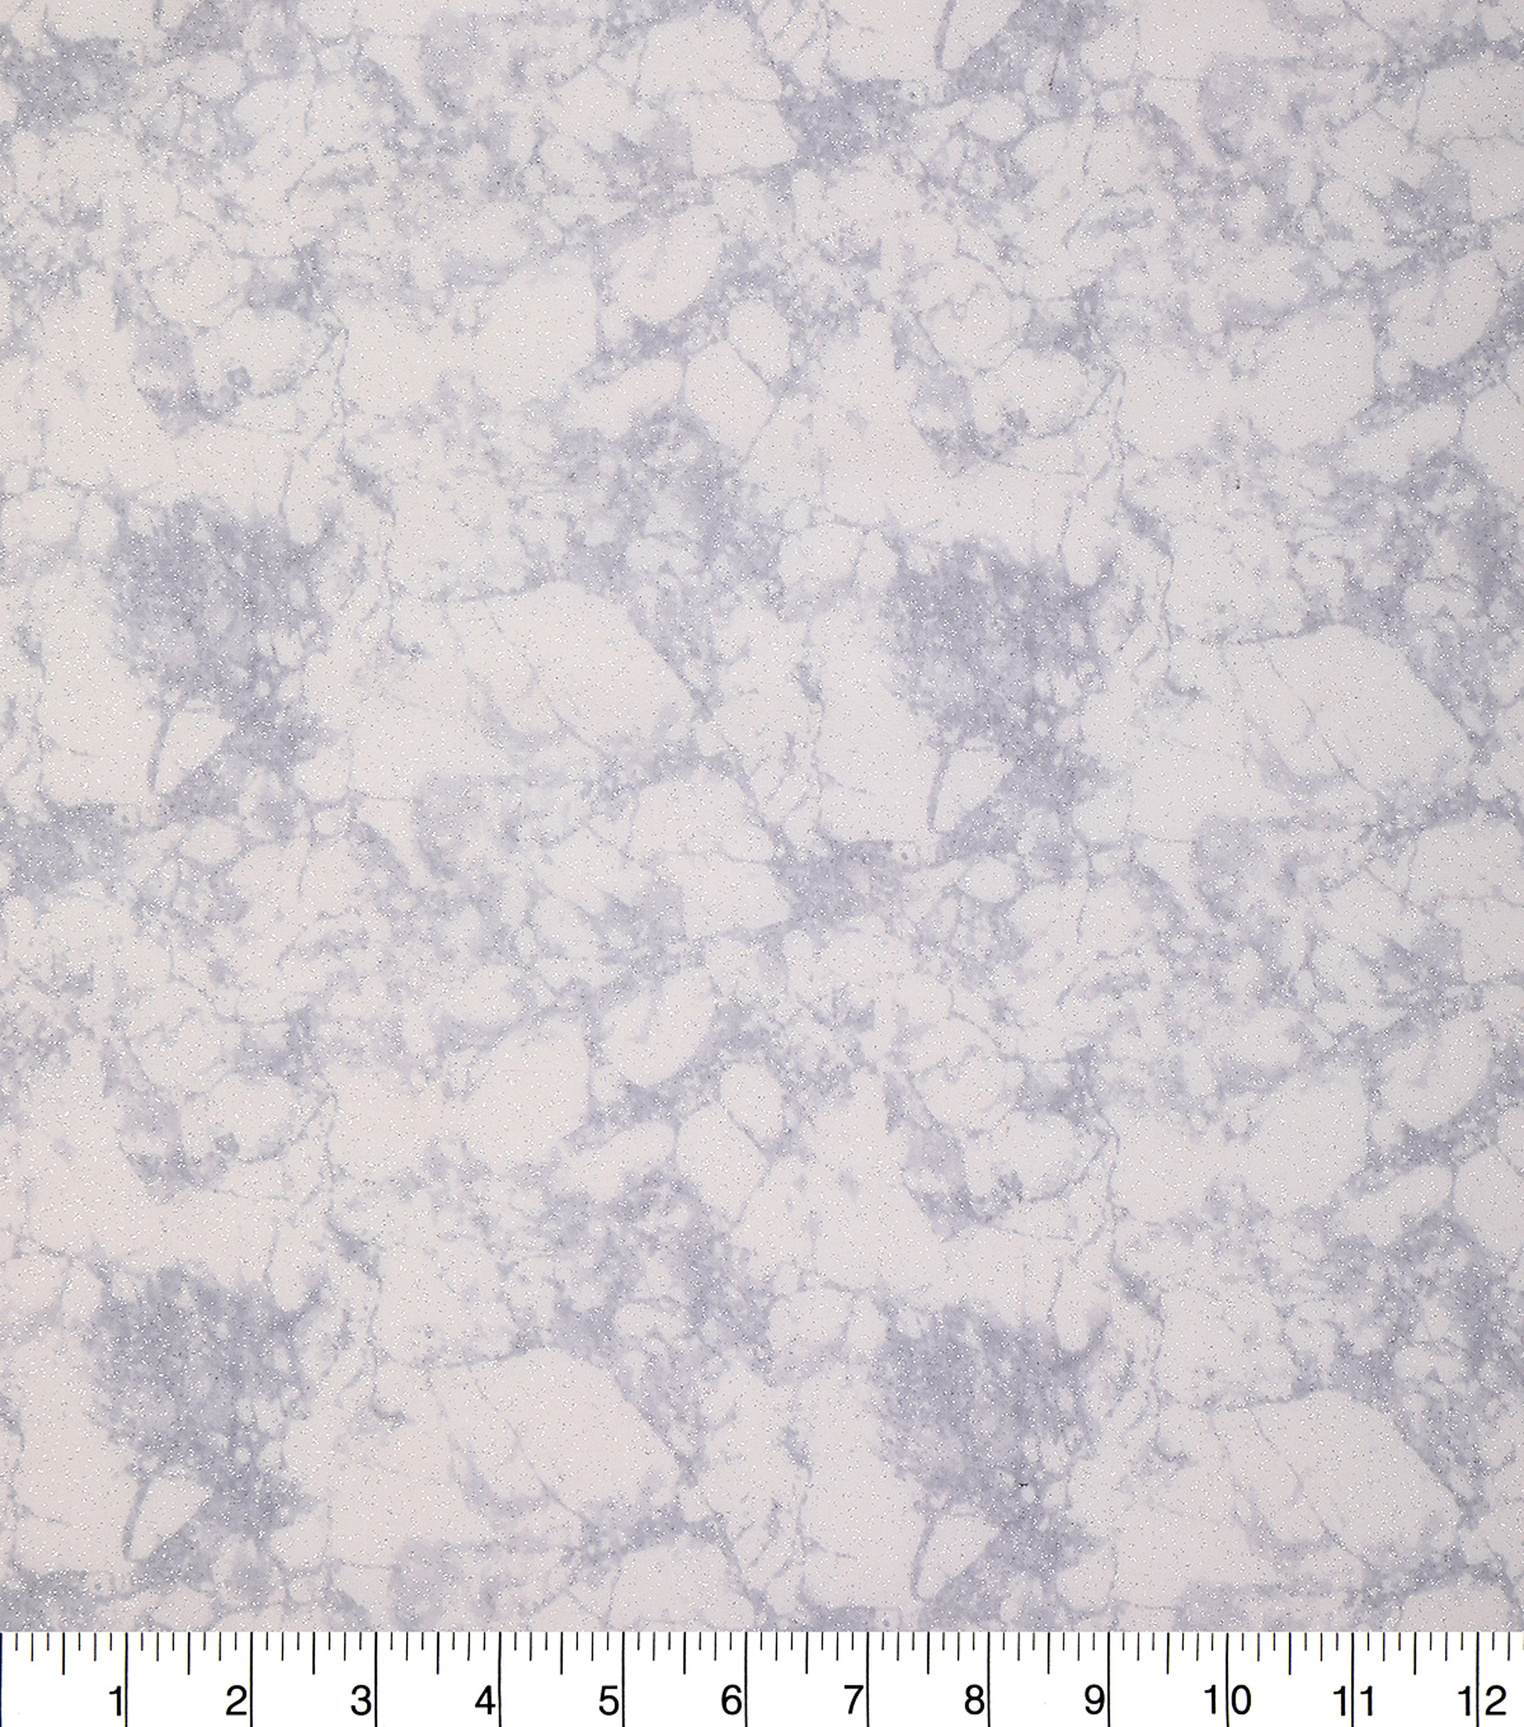 Keepsake Calico Glitter Cotton Fabric 43\u0027\u0027-White Snake Skin Crackle